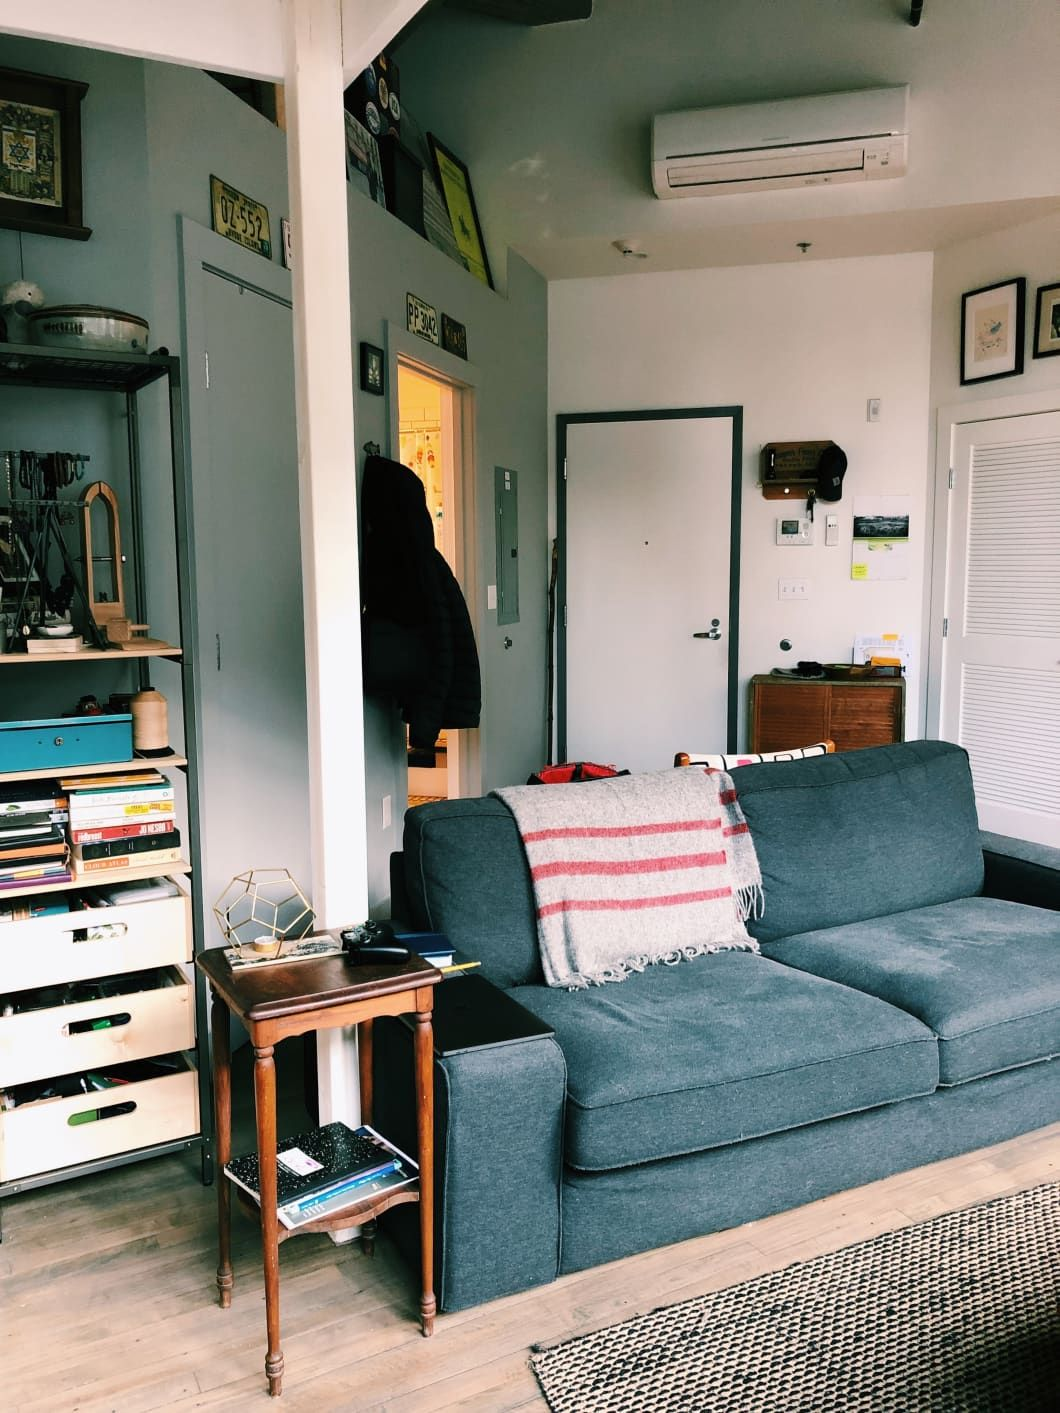 A Small Boston Studio Apartment Has One of the Best DIY